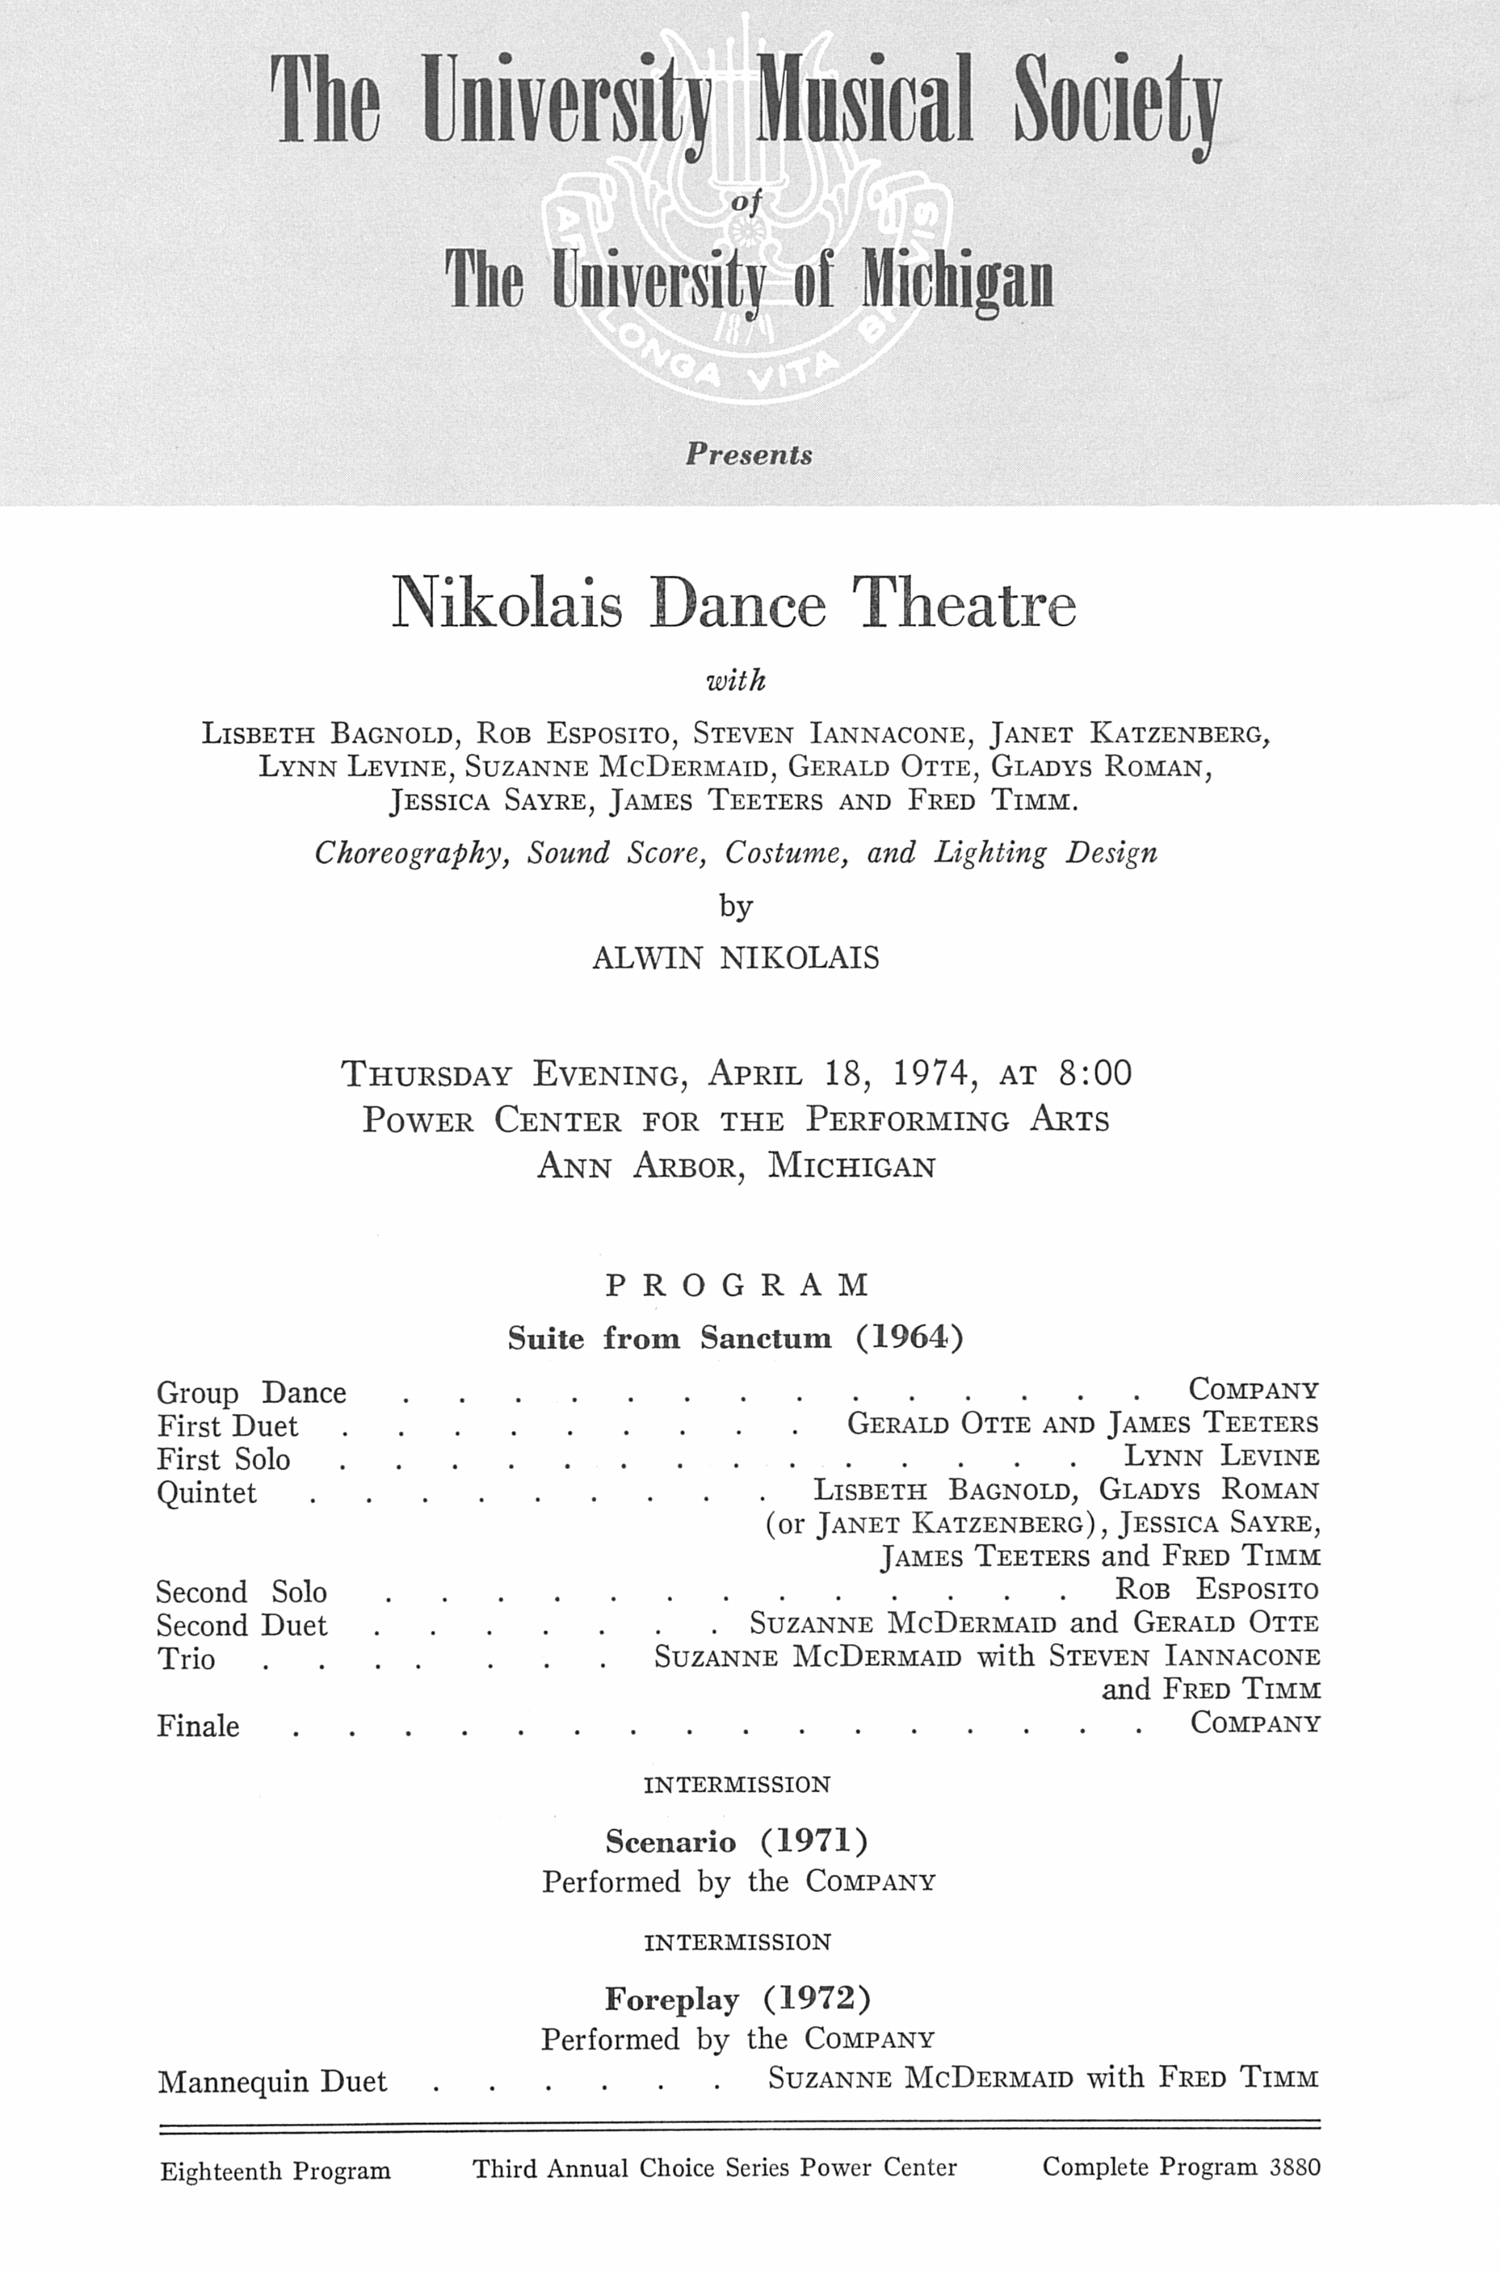 UMS Concert Program, April 18, 1974: Nikolais Dance Theatre --  image